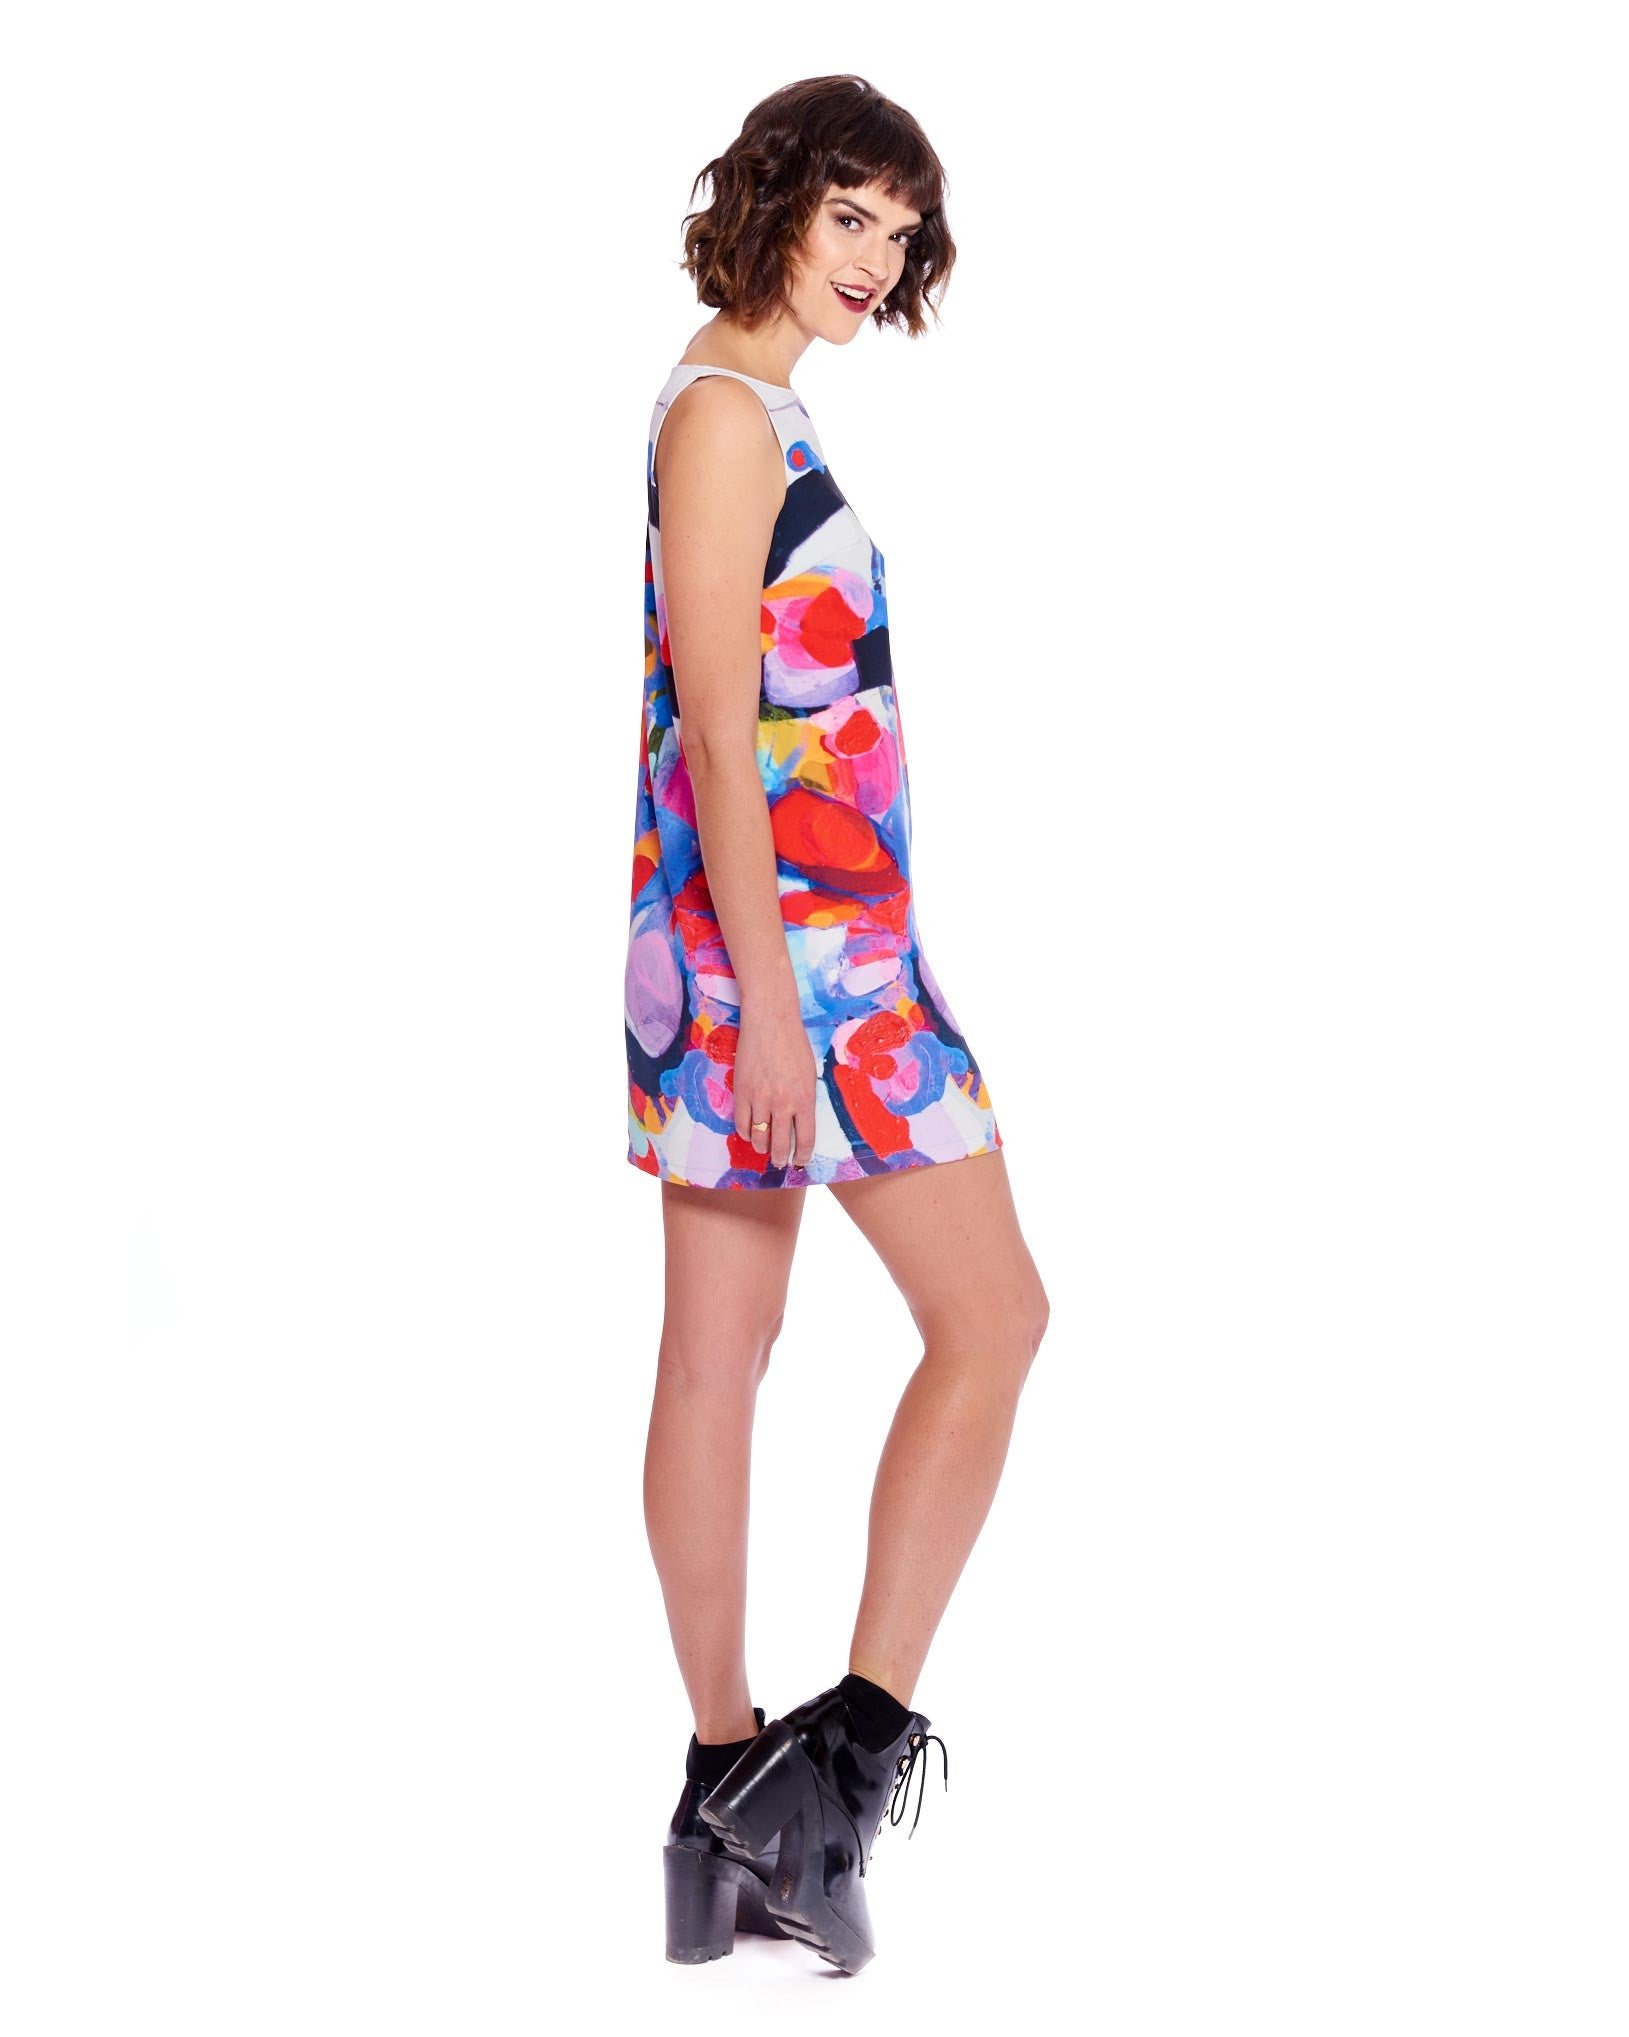 Try Me Shift Dress - Nuvango Gallery & Goods - 2